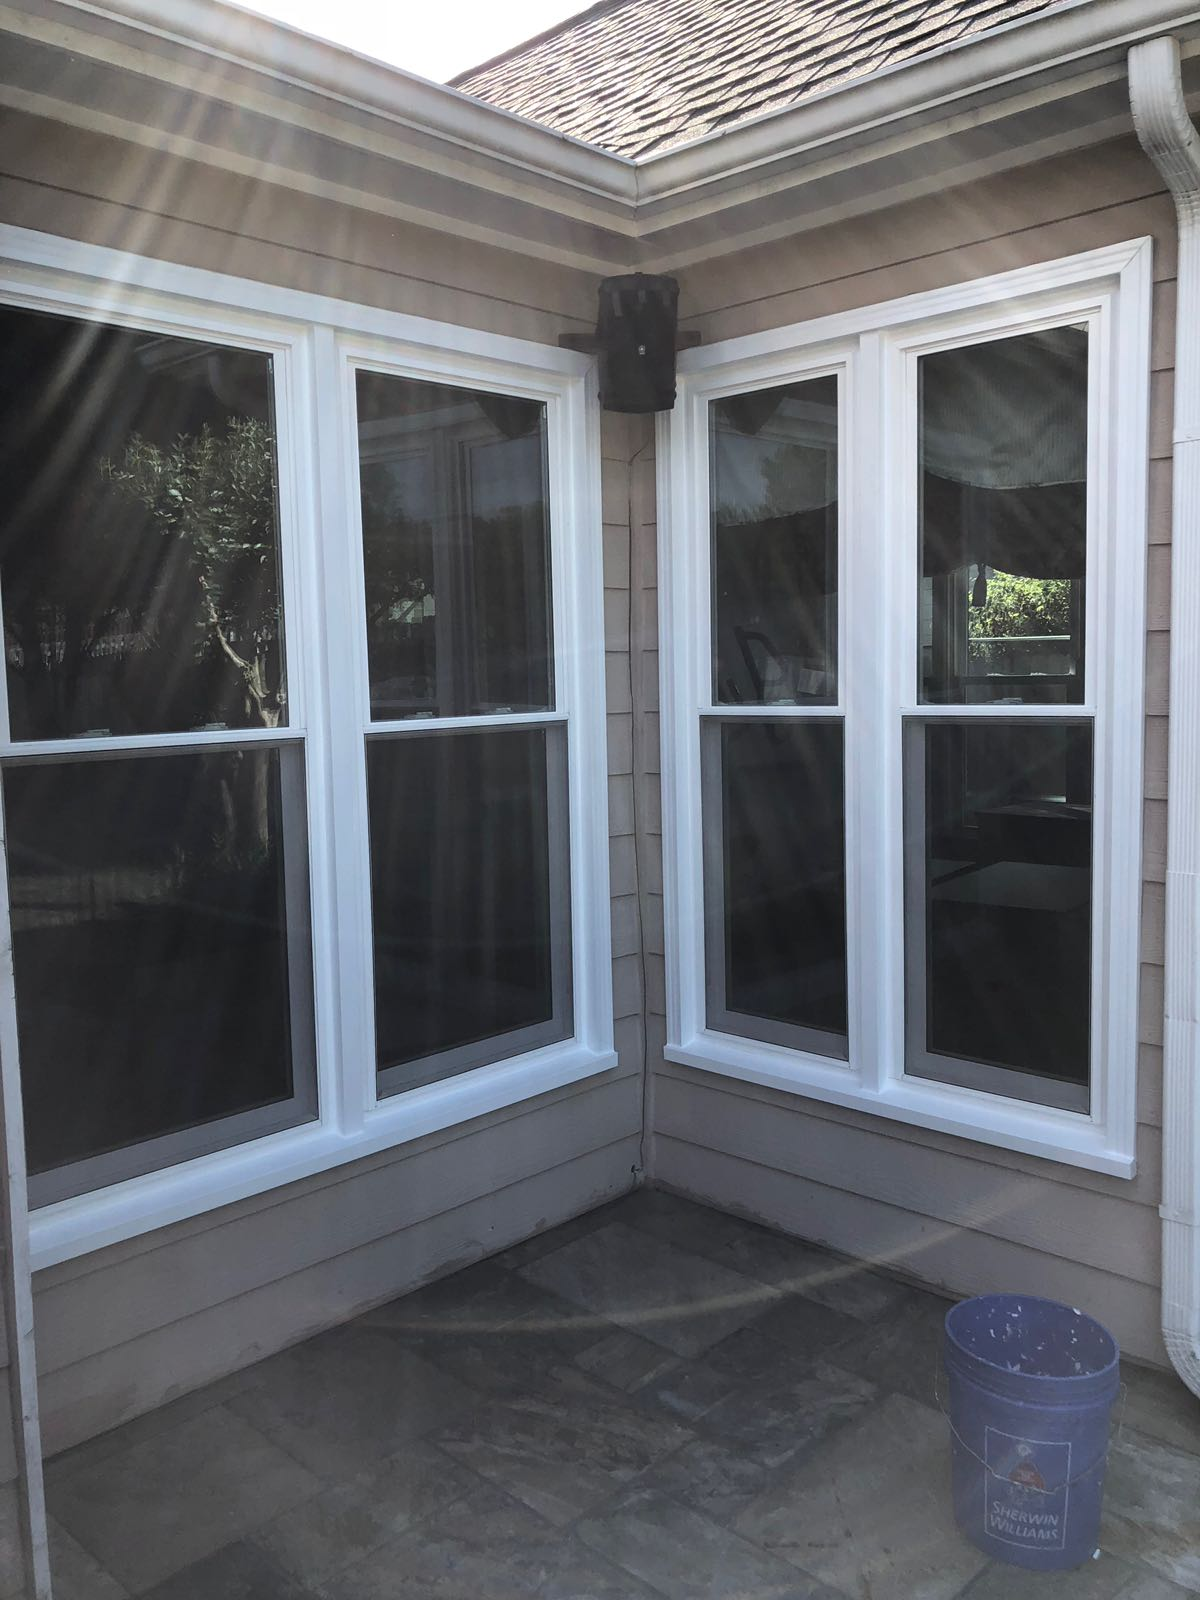 The Window Source Of Atlanta Installed 6000 Series Vinyl Replacement Windows And Cing In This Brink Ranch Custom Exterior Is A Process Which